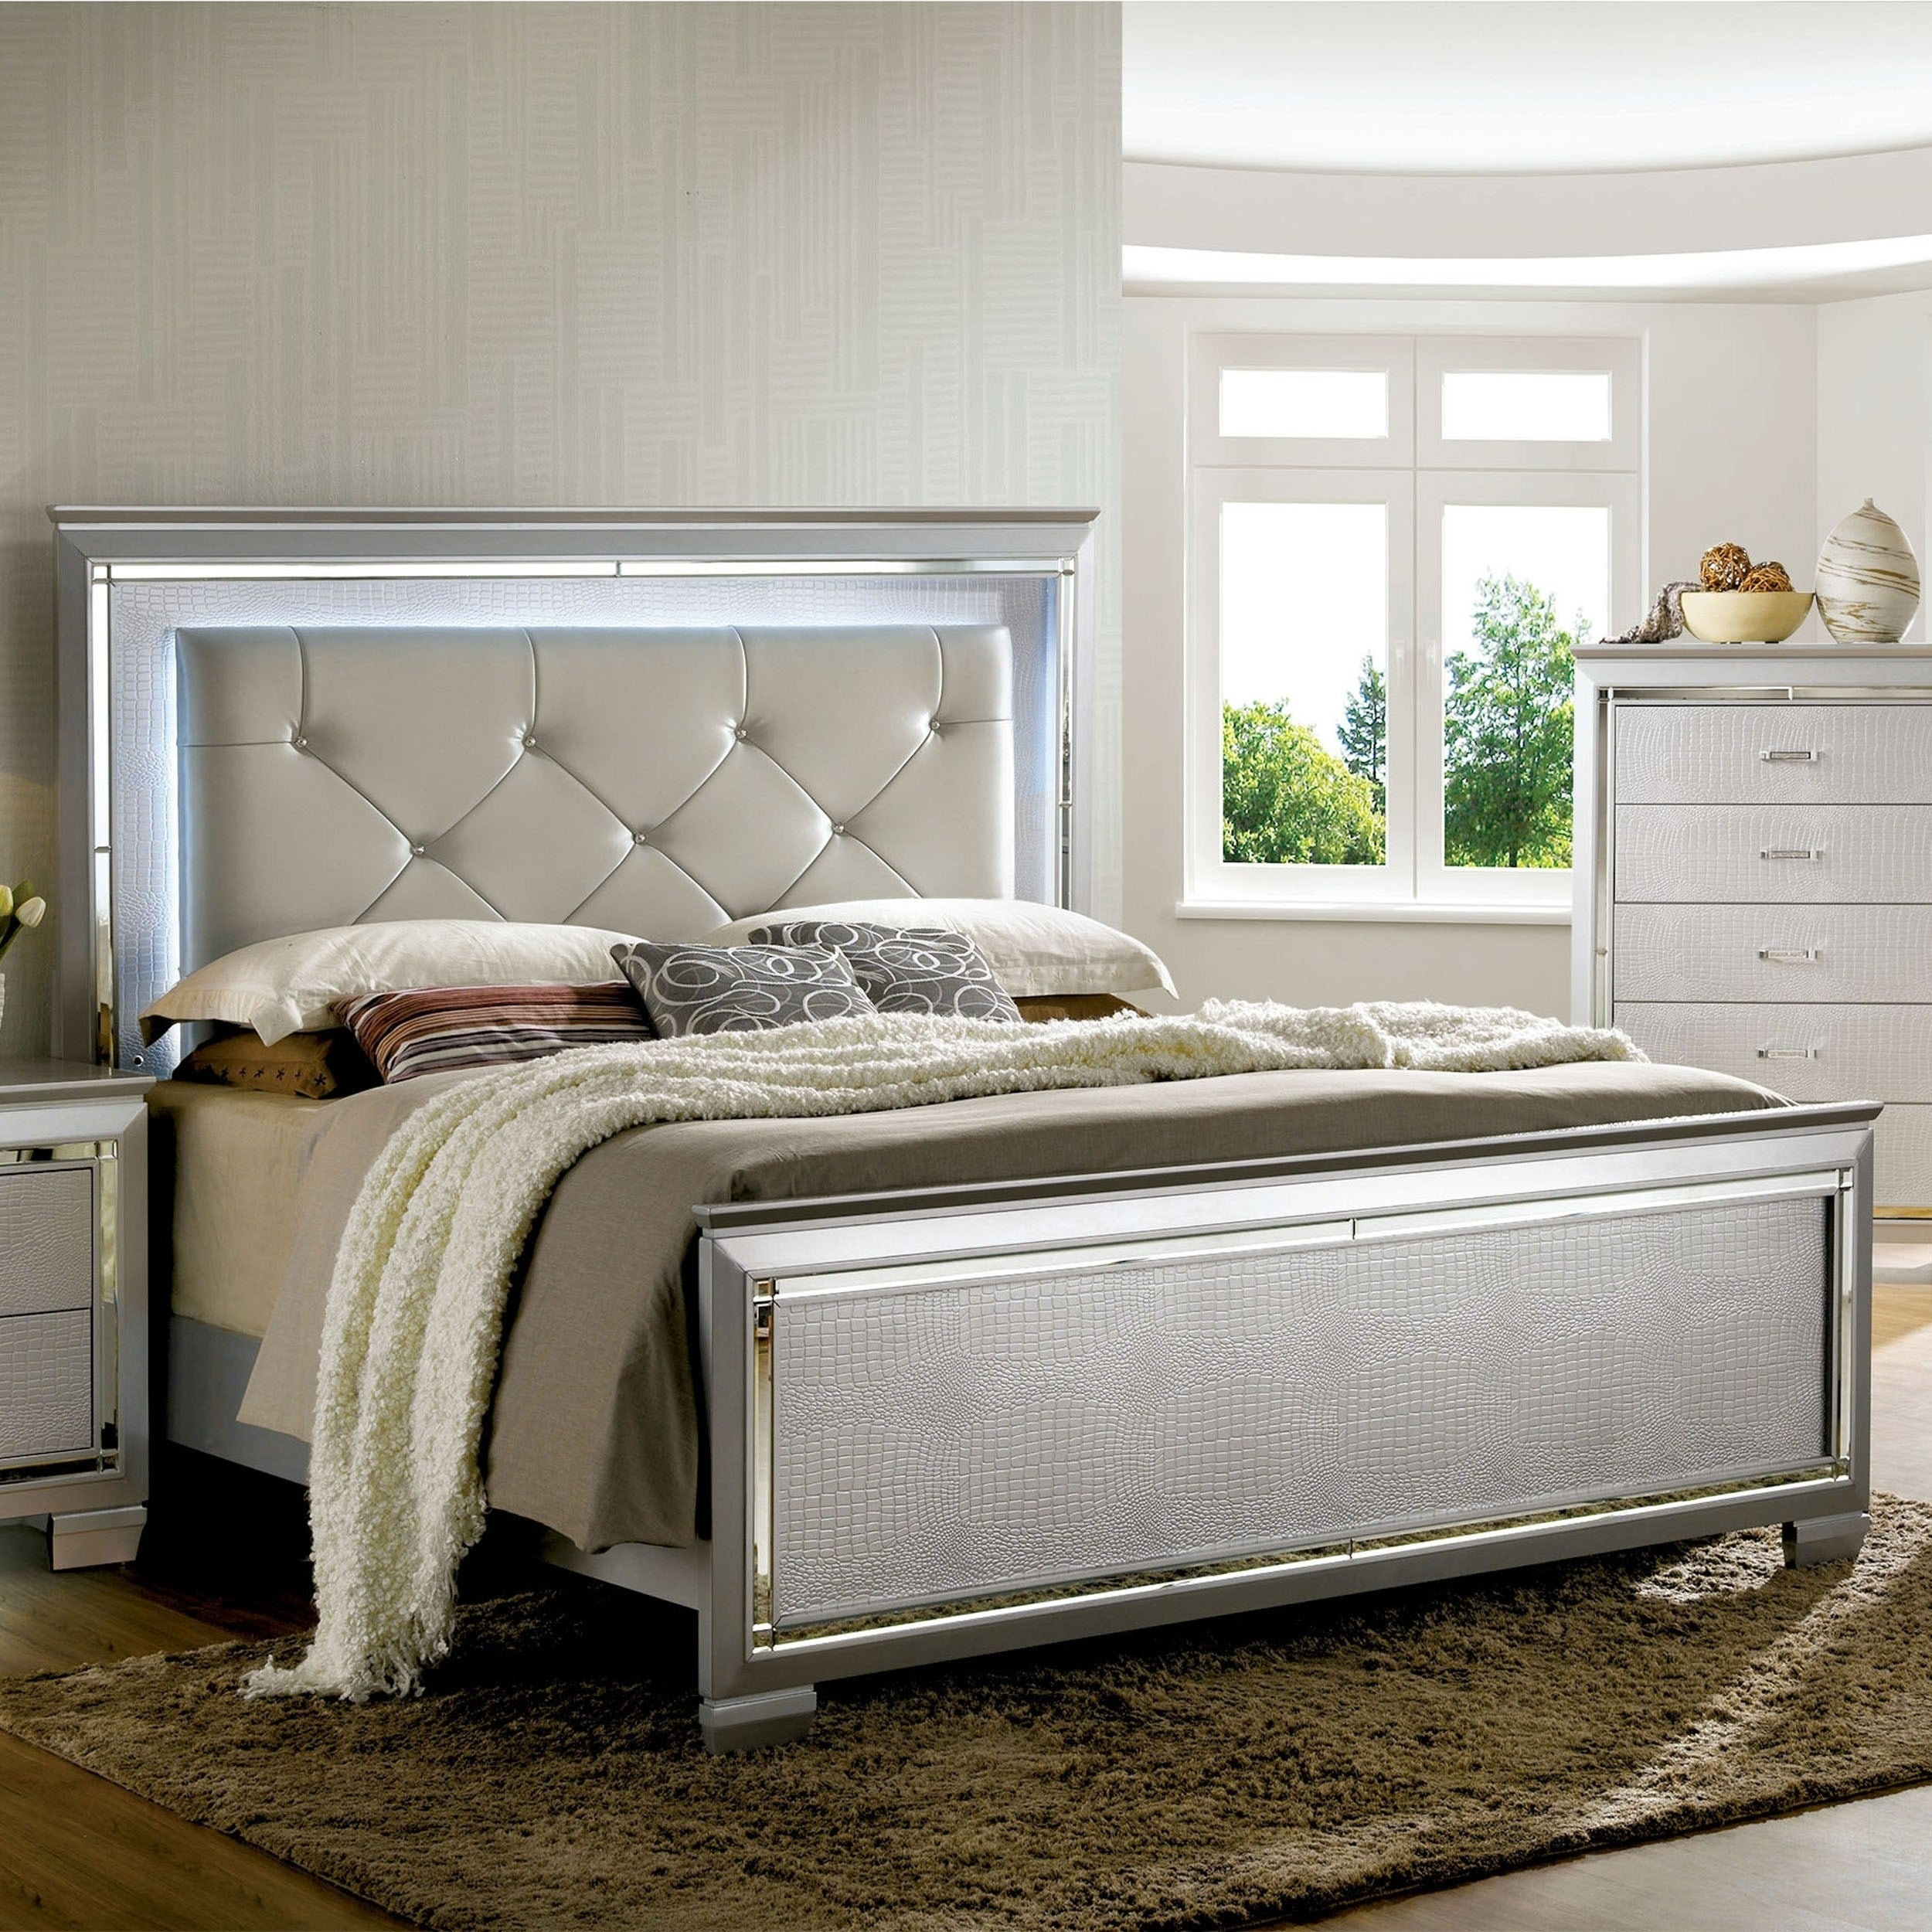 Furniture Of America Ruff Contemporary Silver Faux Leather Panel Bed Overstock 11019988